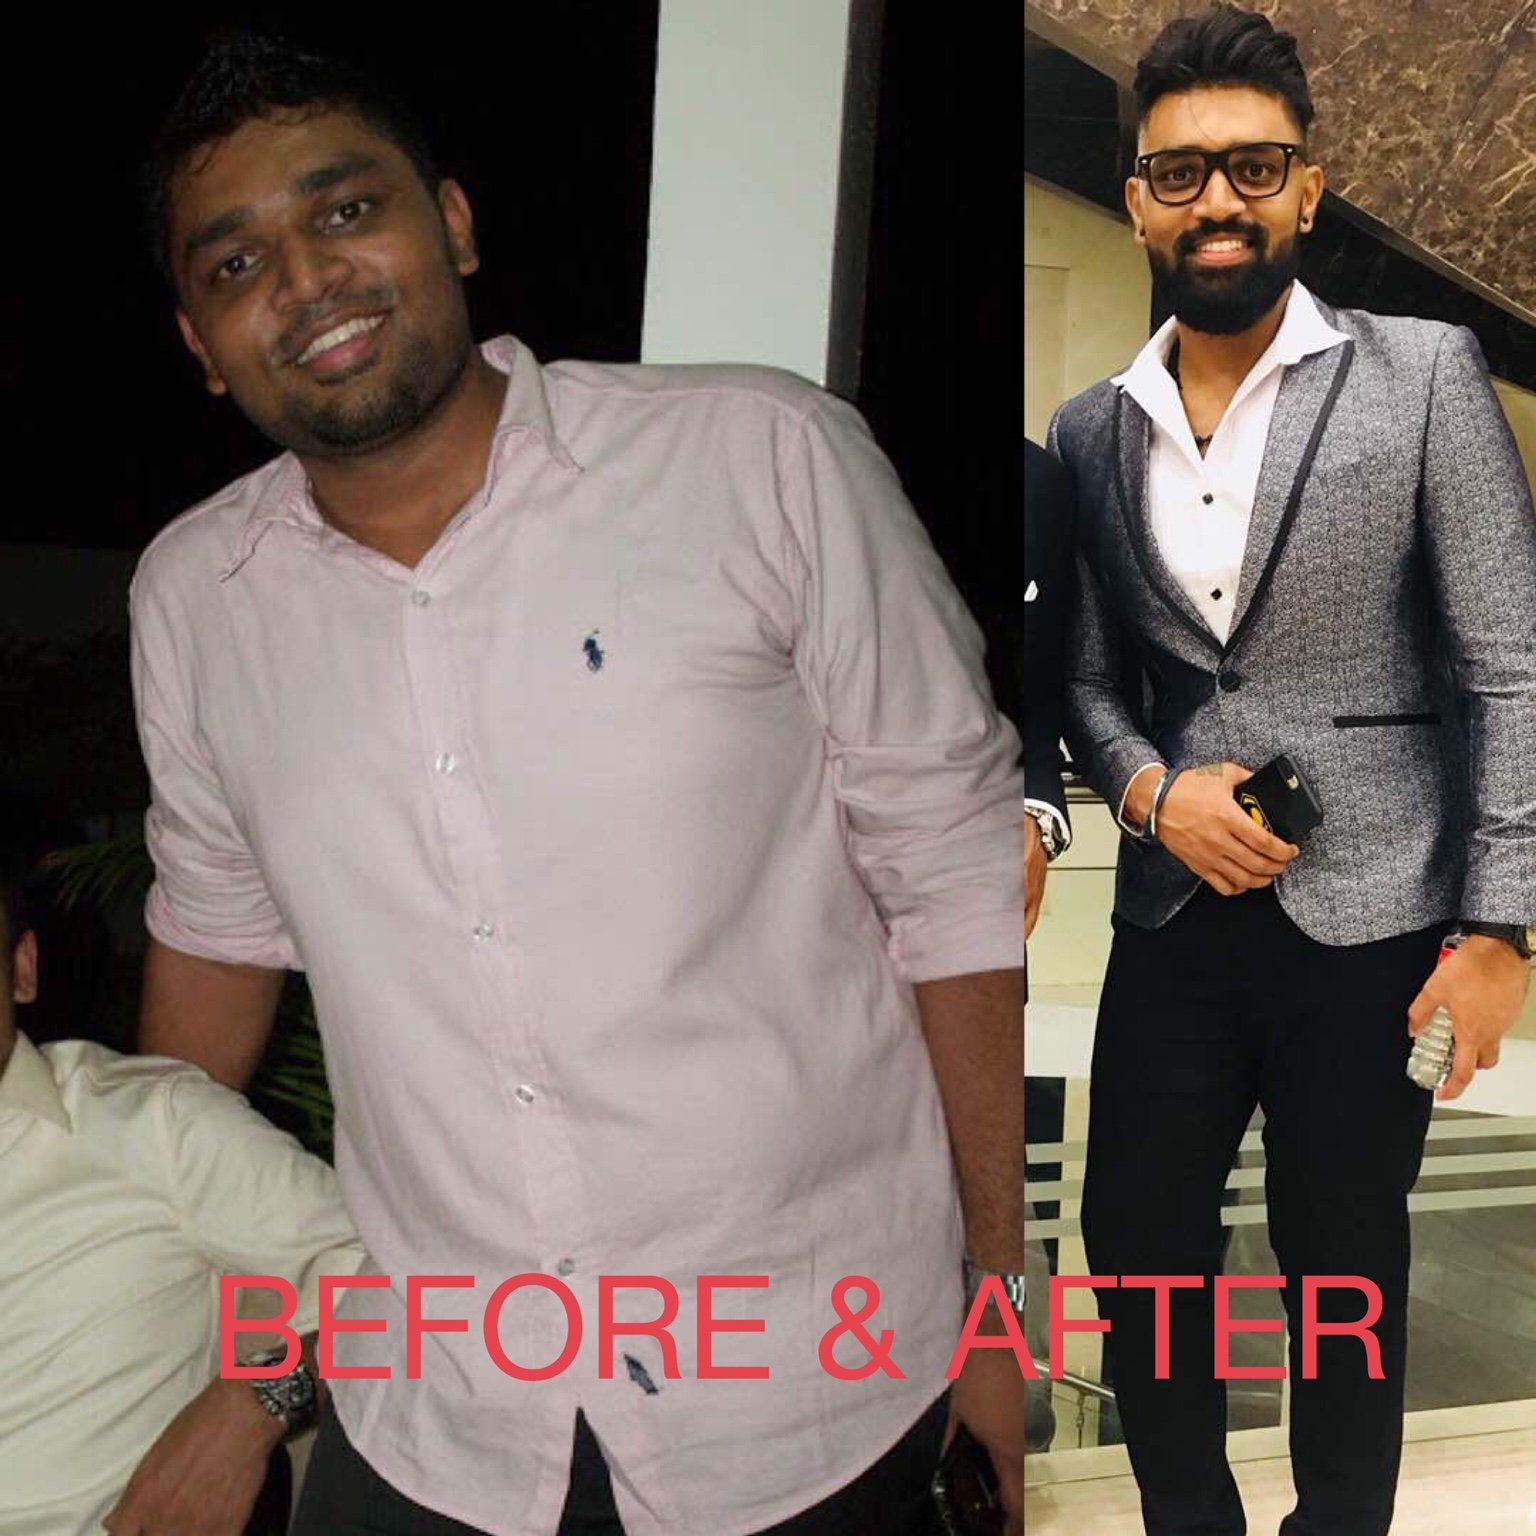 personal trainer and fitness coach in Dubai - Shihab 7